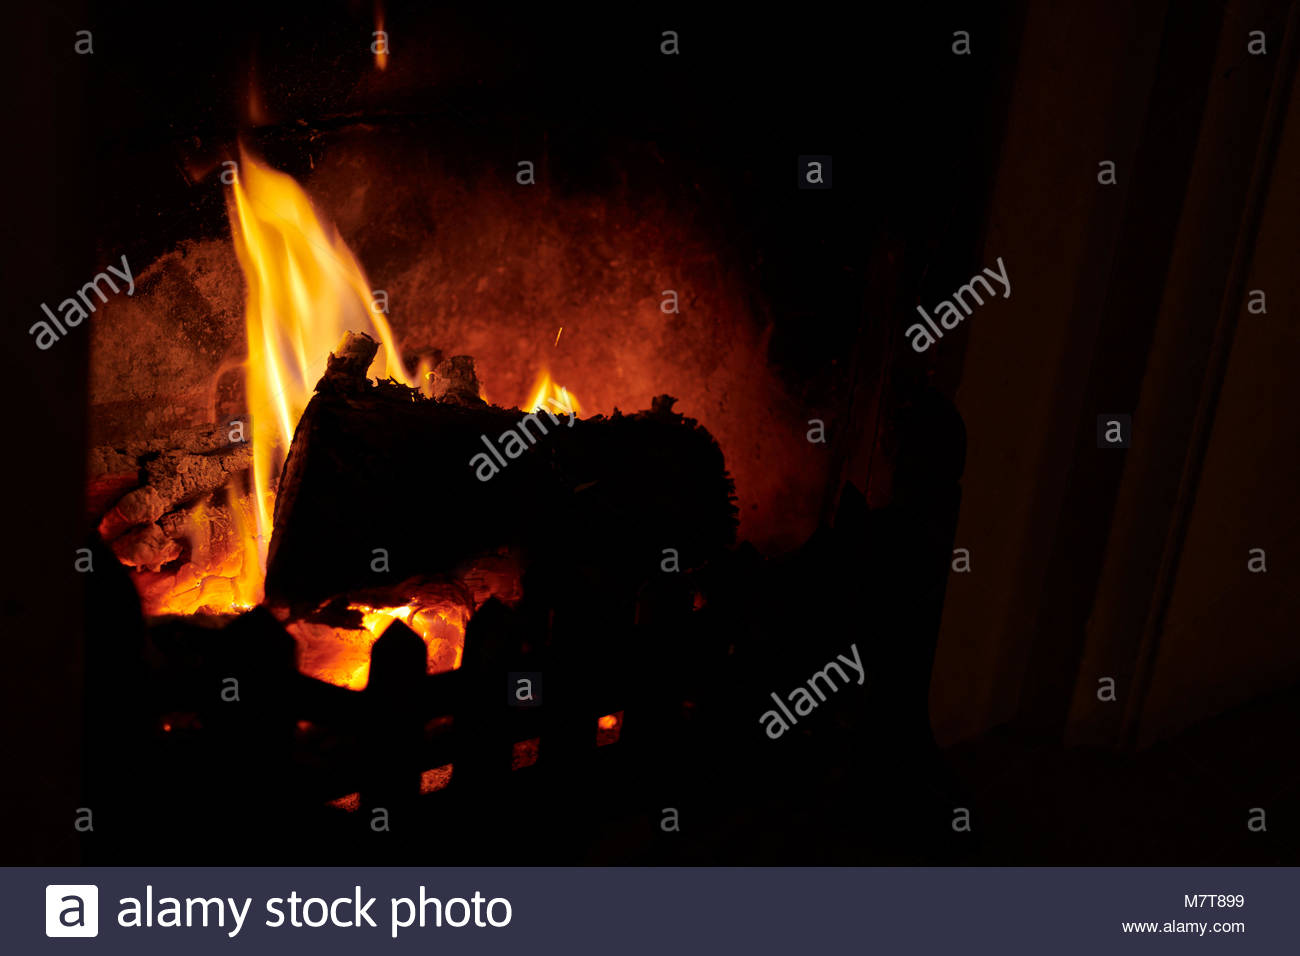 Flaming log in fire keeping the room warm in winter - Stock Image